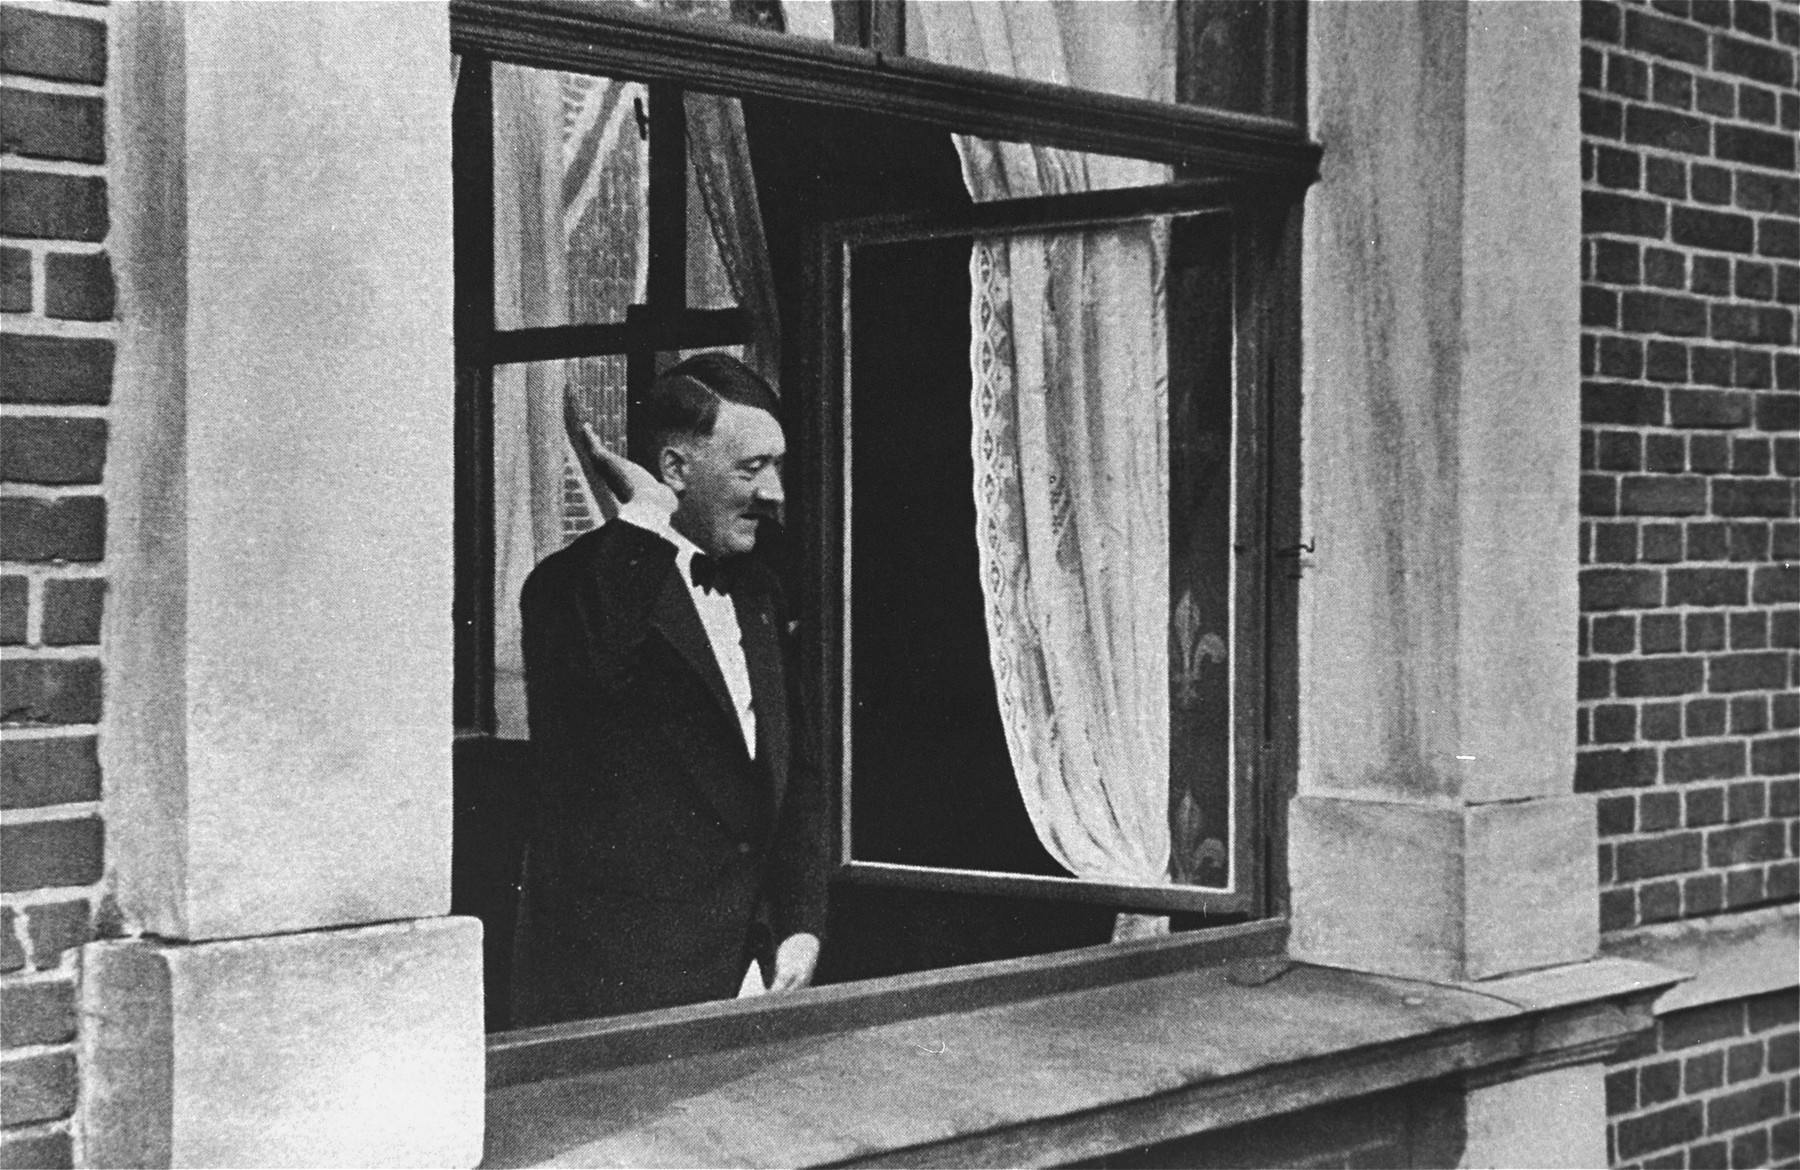 Adolf Hitler salutes a crowd from the windows of the Chancellory.  This photograph, perhaps a reenactment of his assumption of power on January 30, 1933, was reprinted as a propaganda postcard.